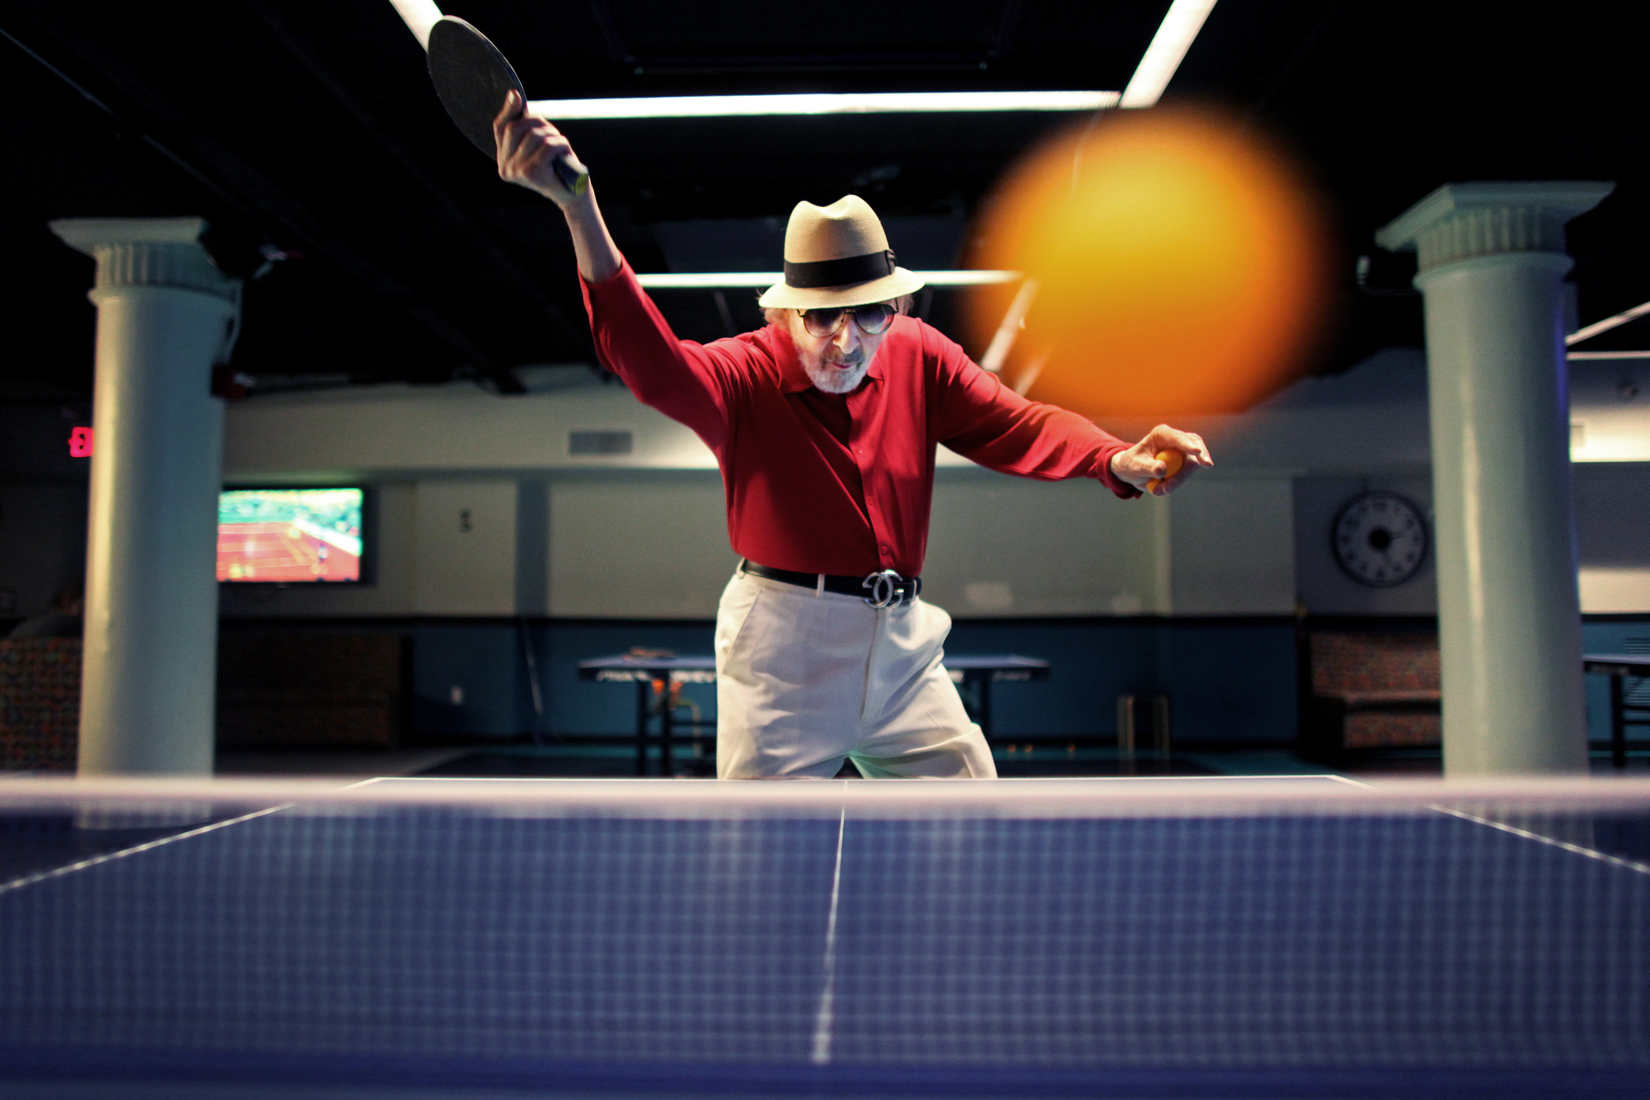 Marty Reisman, 81, 1958 and 1960 U.S. Open table tennis champion, poses for a portrait playing ping pong at Spin New York on Sunday, May 29, 2011 in Manhattan, New York.  (For The New York Times)